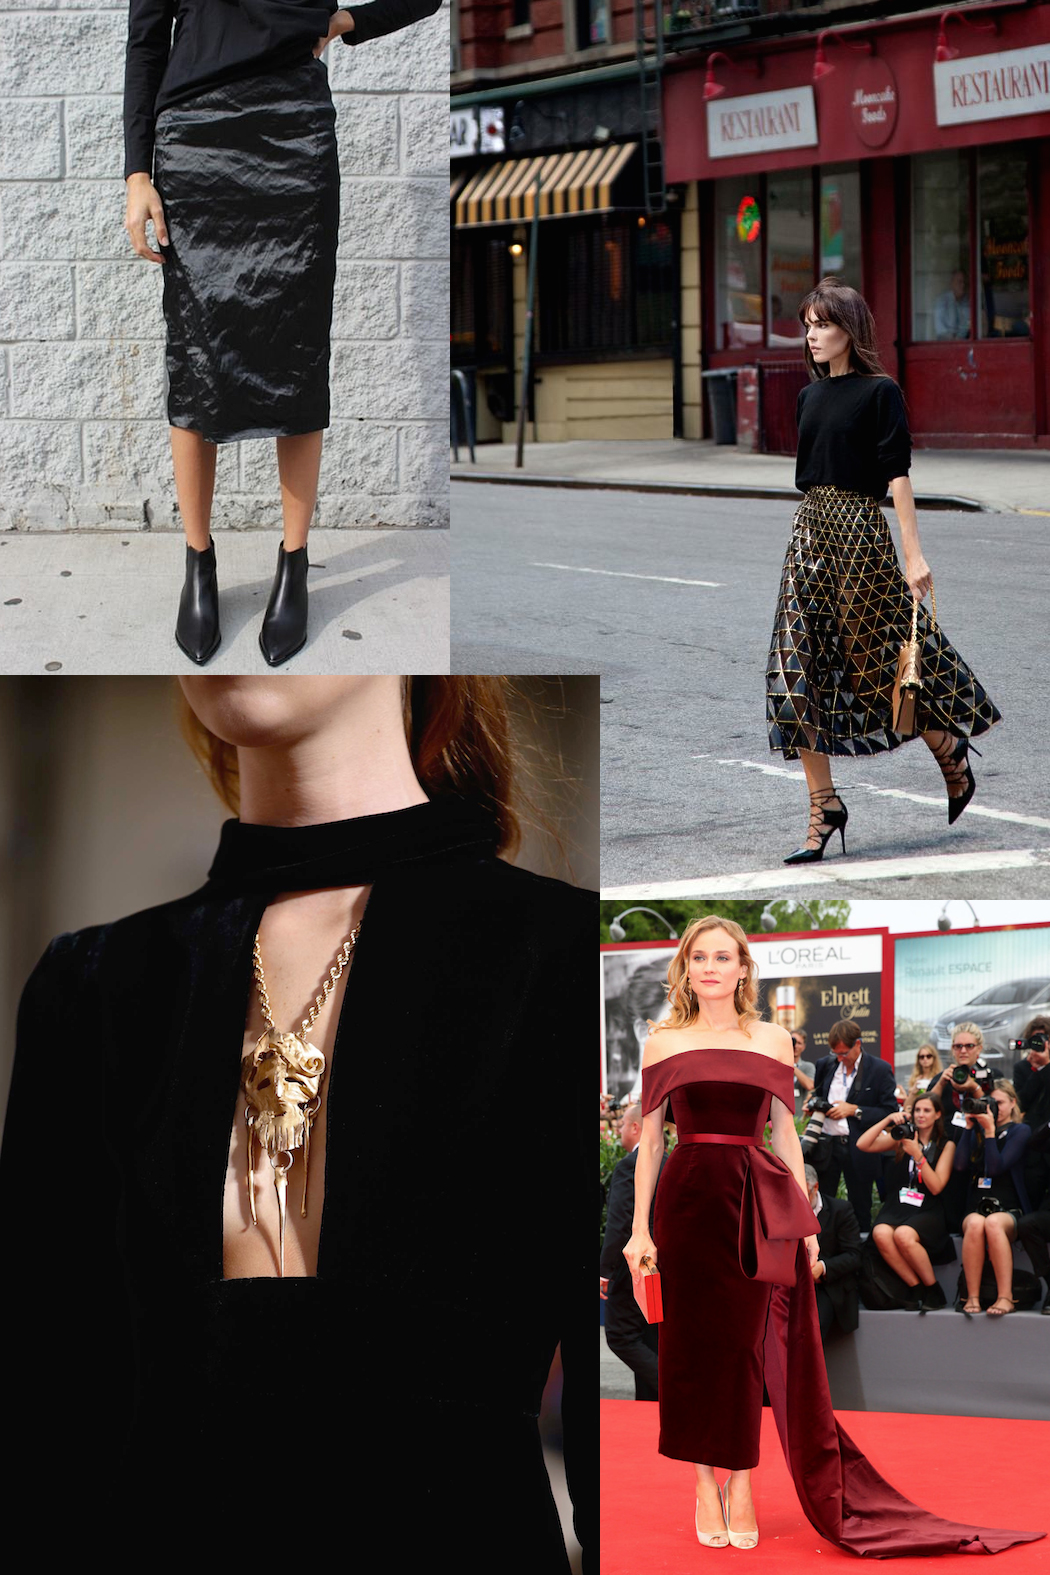 Festive Season style inspiration fash-n-chips.com 1